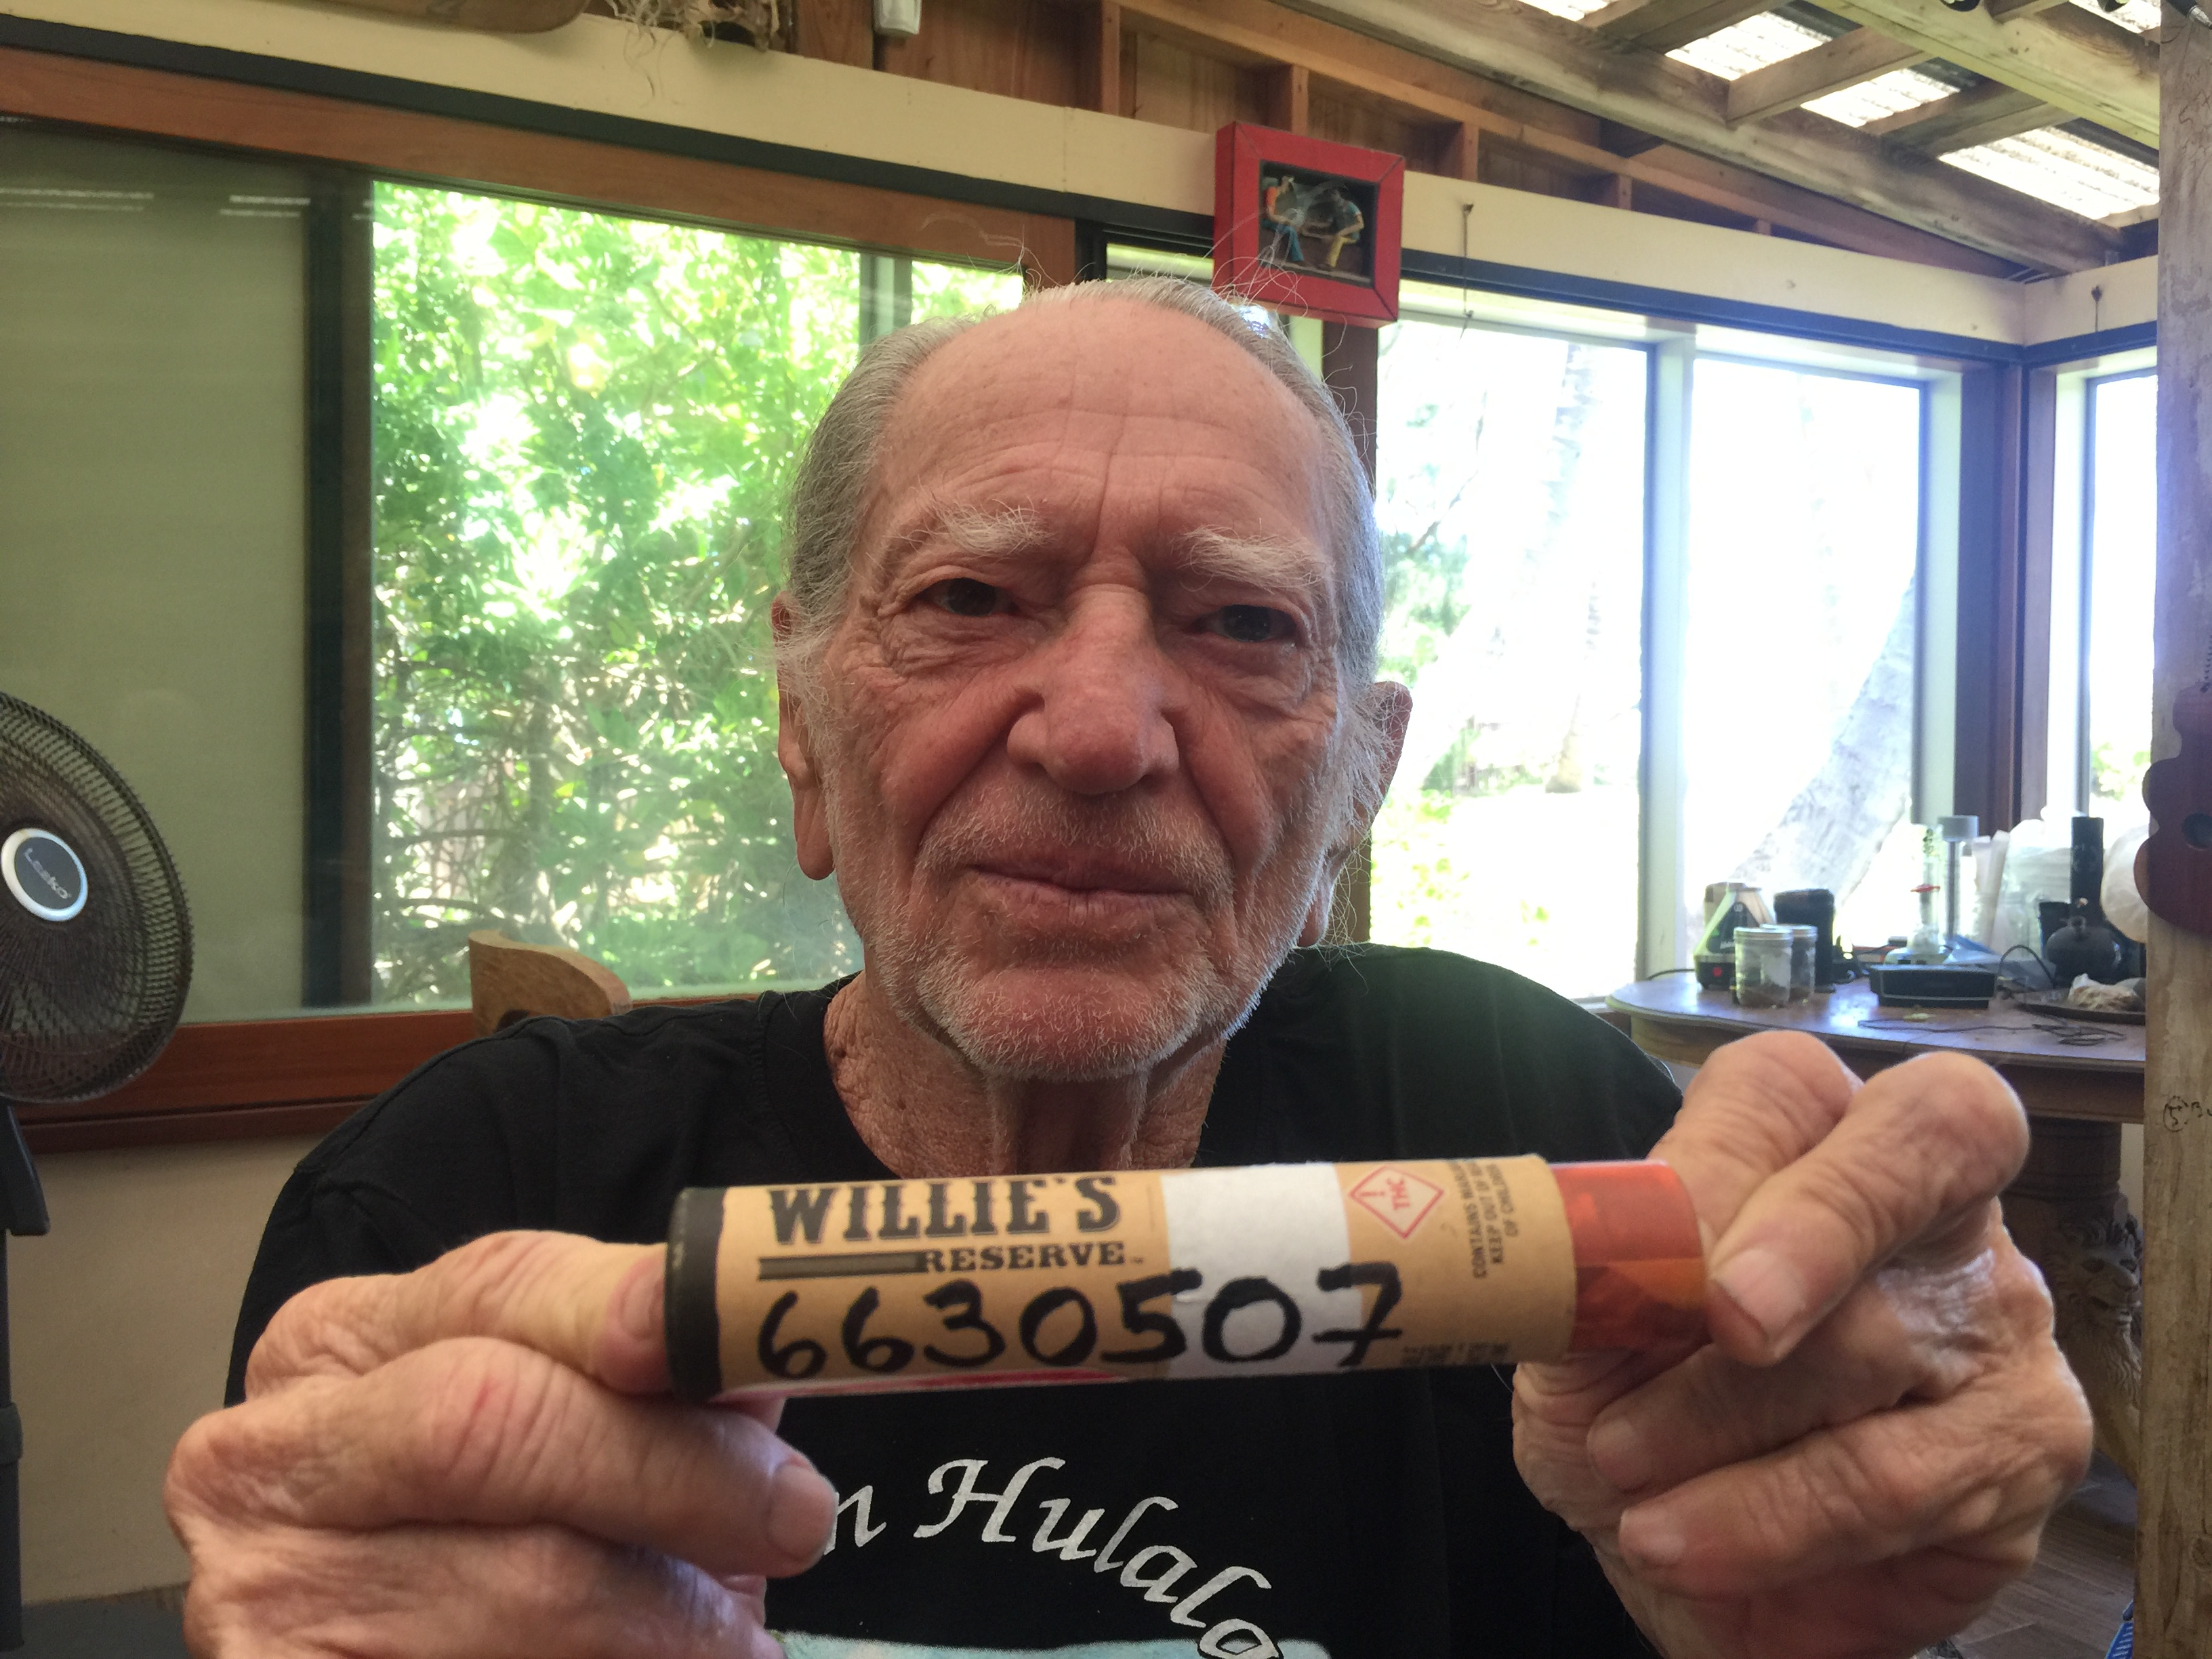 "Willie Nelson holds up a container of his branded marijuana with ""6630507"" written on it."